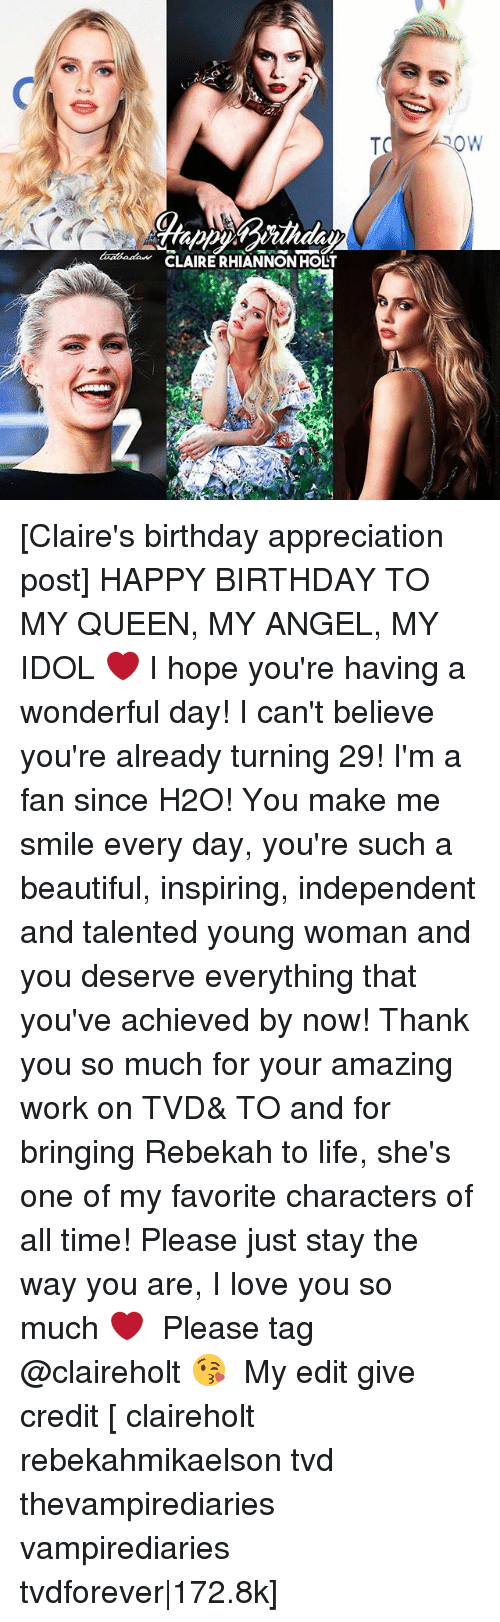 Beautiful, Birthday, and Life: a CLAIRE RHIANNON HOLT  ROW [Claire's birthday appreciation post] HAPPY BIRTHDAY TO MY QUEEN, MY ANGEL, MY IDOL ❤️ I hope you're having a wonderful day! I can't believe you're already turning 29! I'm a fan since H2O! You make me smile every day, you're such a beautiful, inspiring, independent and talented young woman and you deserve everything that you've achieved by now! Thank you so much for your amazing work on TVD& TO and for bringing Rebekah to life, she's one of my favorite characters of all time! Please just stay the way you are, I love you so much ❤️ ⠀ Please tag @claireholt 😘 ⠀ My edit give credit [ claireholt rebekahmikaelson tvd thevampirediaries vampirediaries tvdforever|172.8k]